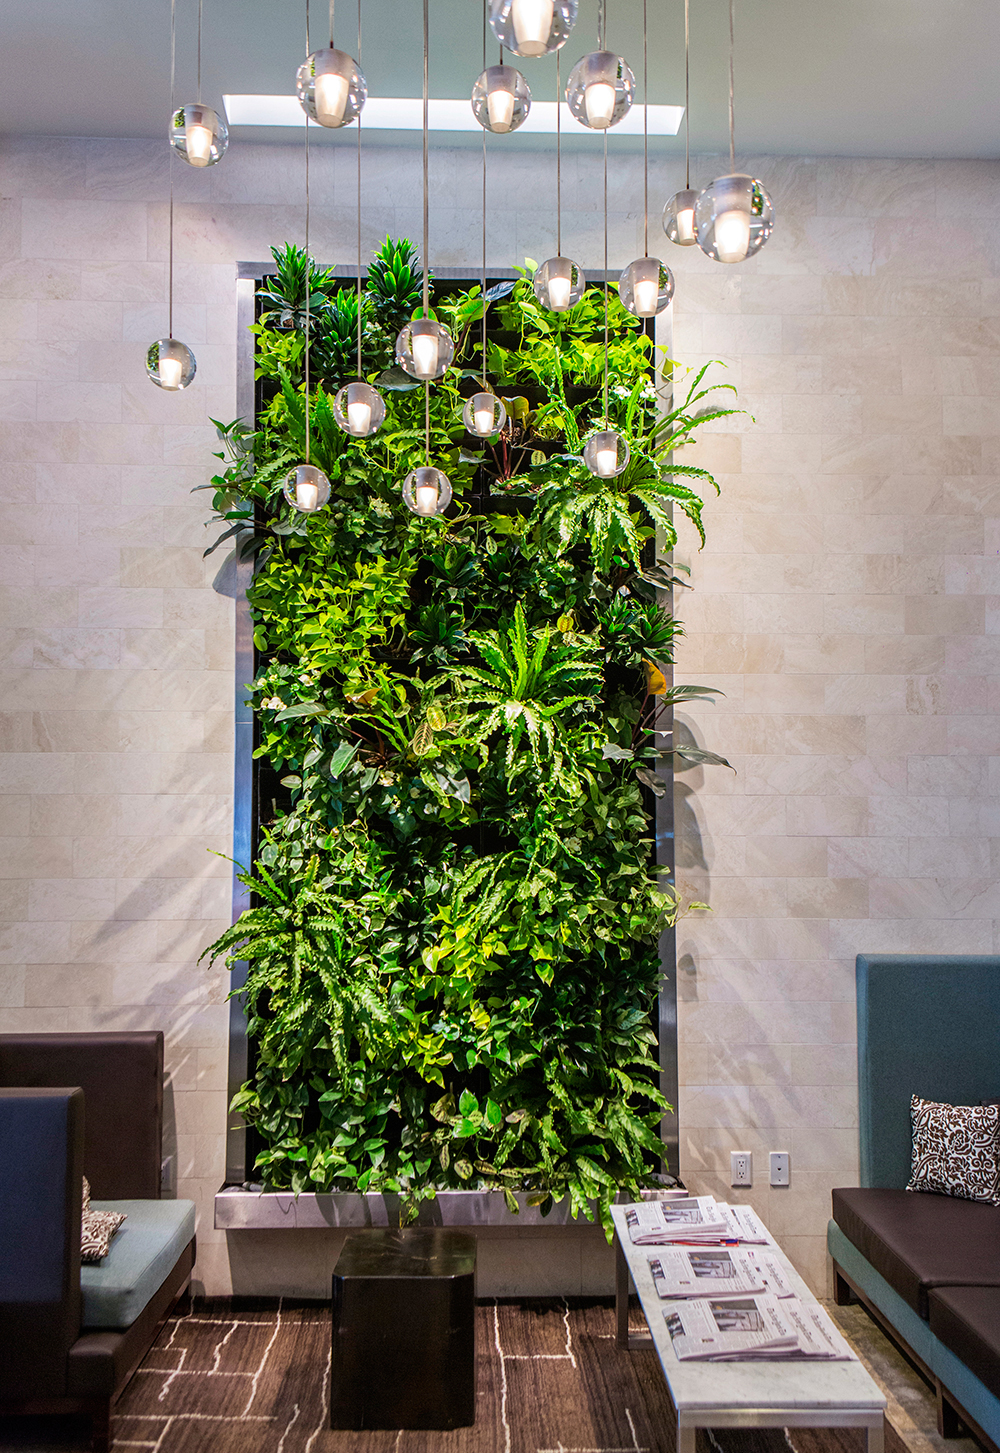 Hotel Lobby Living Wall Landscaping Green Textures In